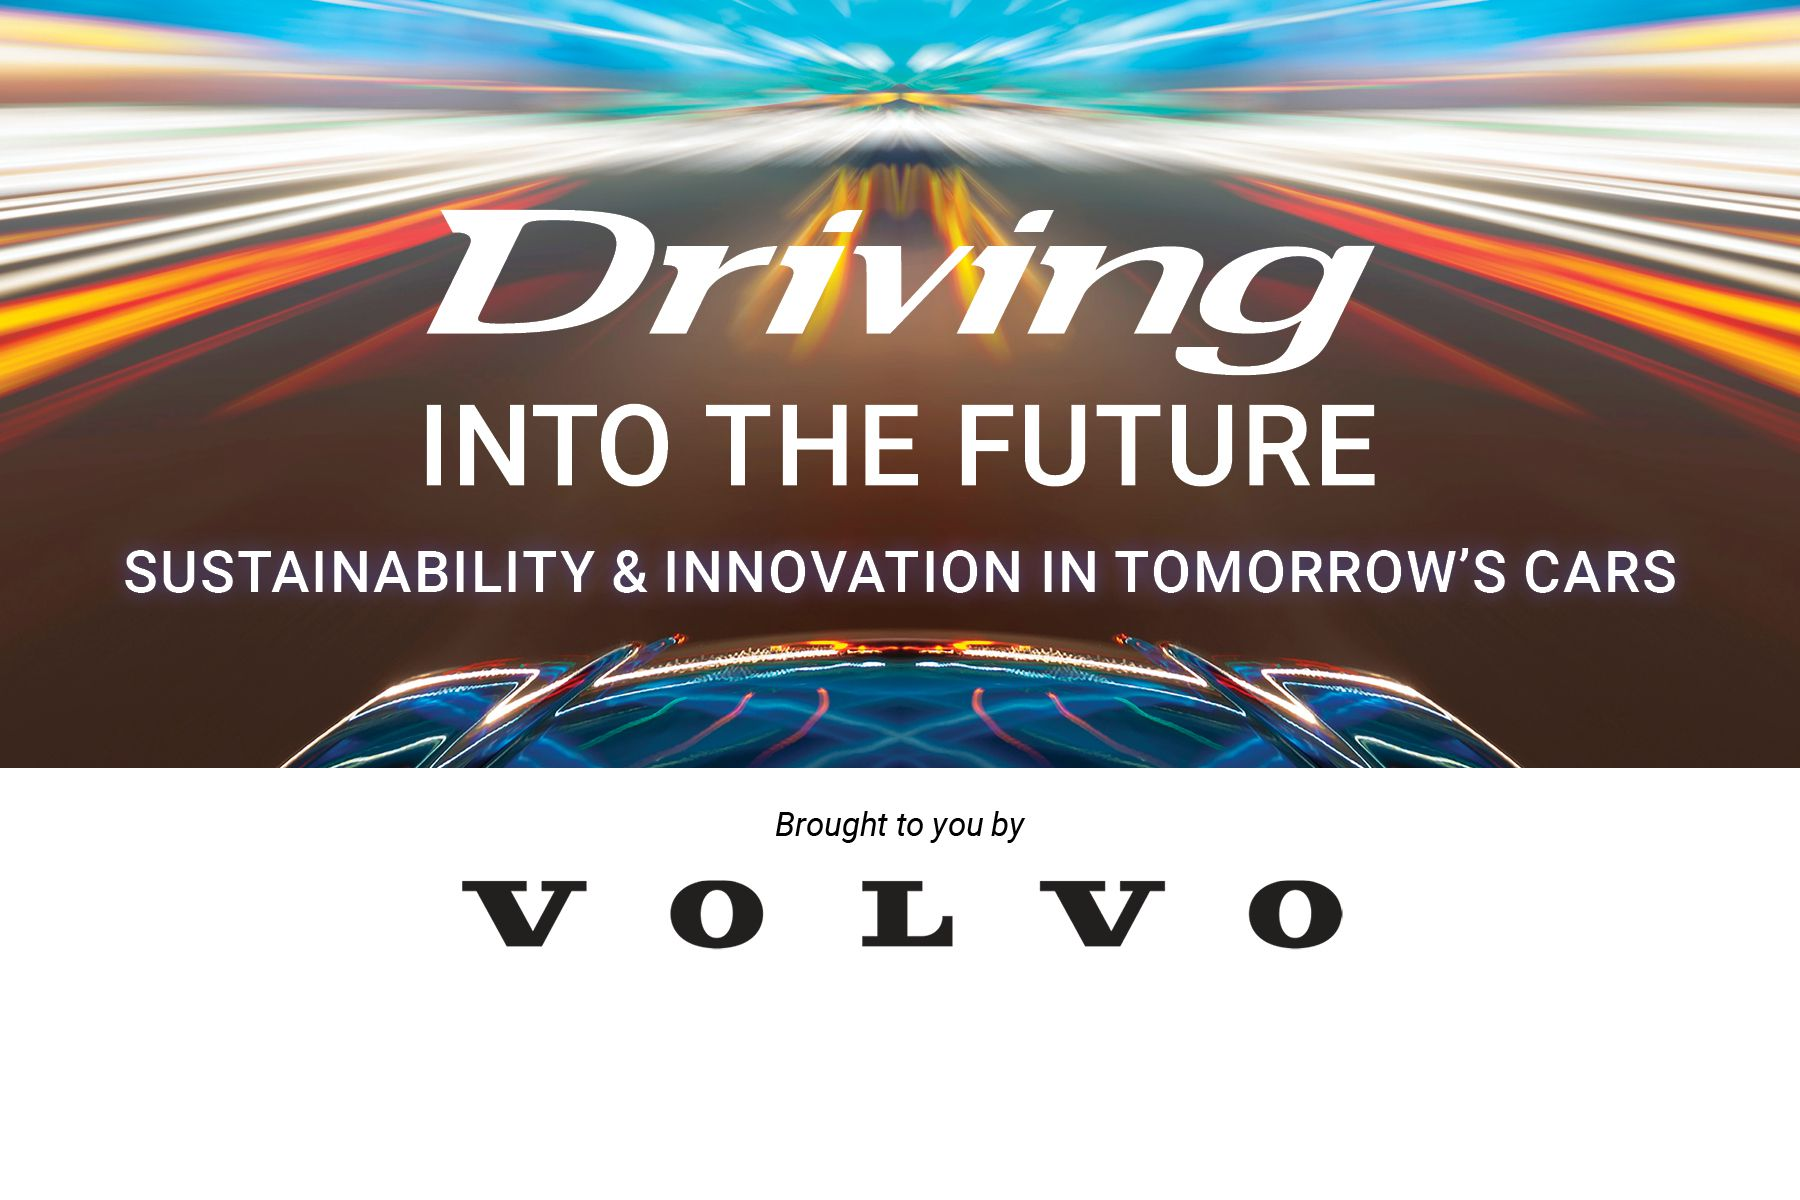 Driving into the Future: Sustainability and Innovation in tomorrow's cars